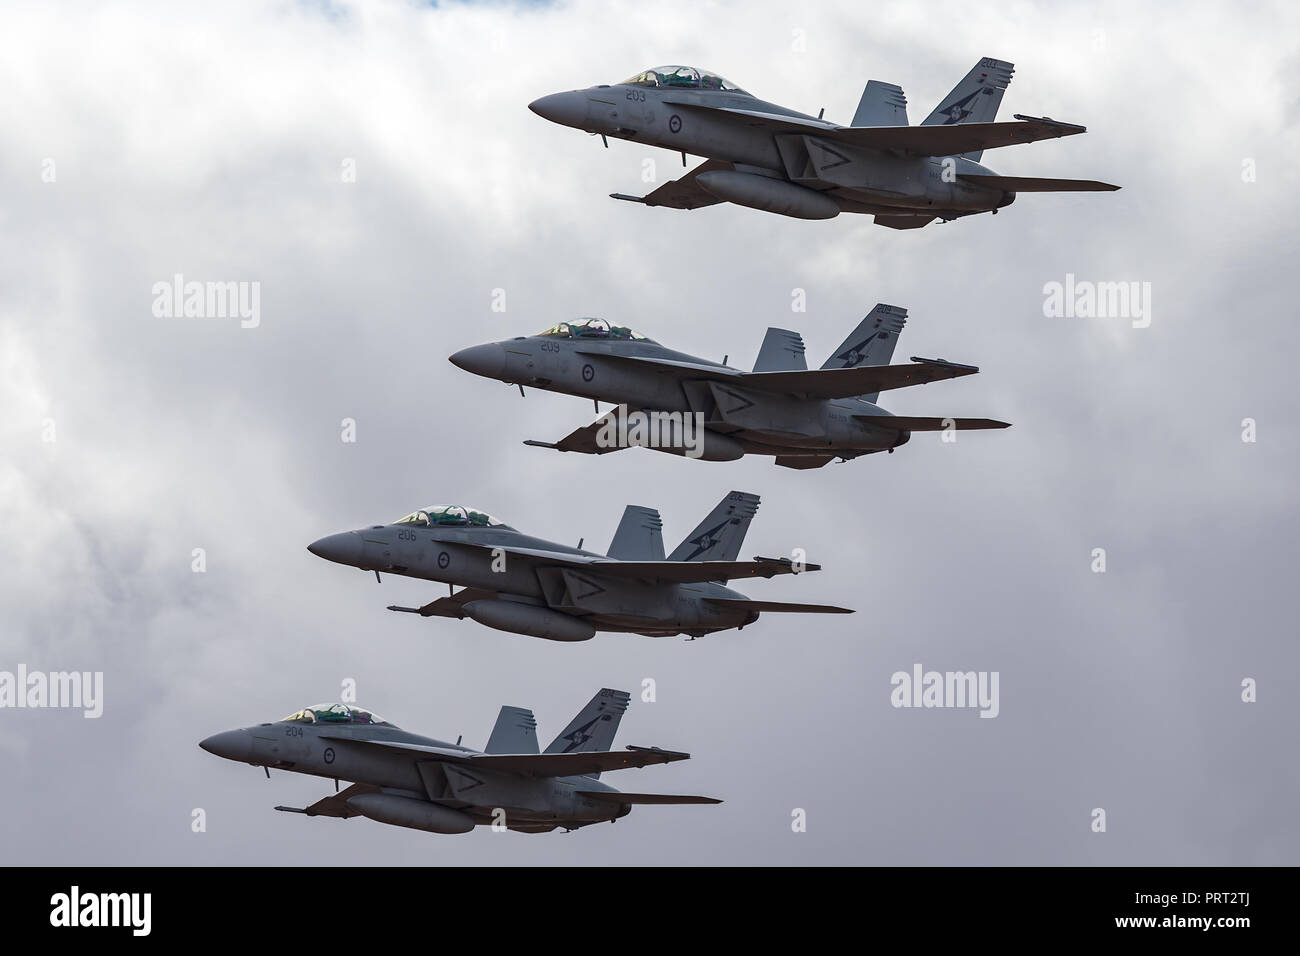 Four Royal Australian Air Force (RAAF) Boeing F/A-18F Super Hornet multirole fighter aircraft flying in formation. - Stock Image